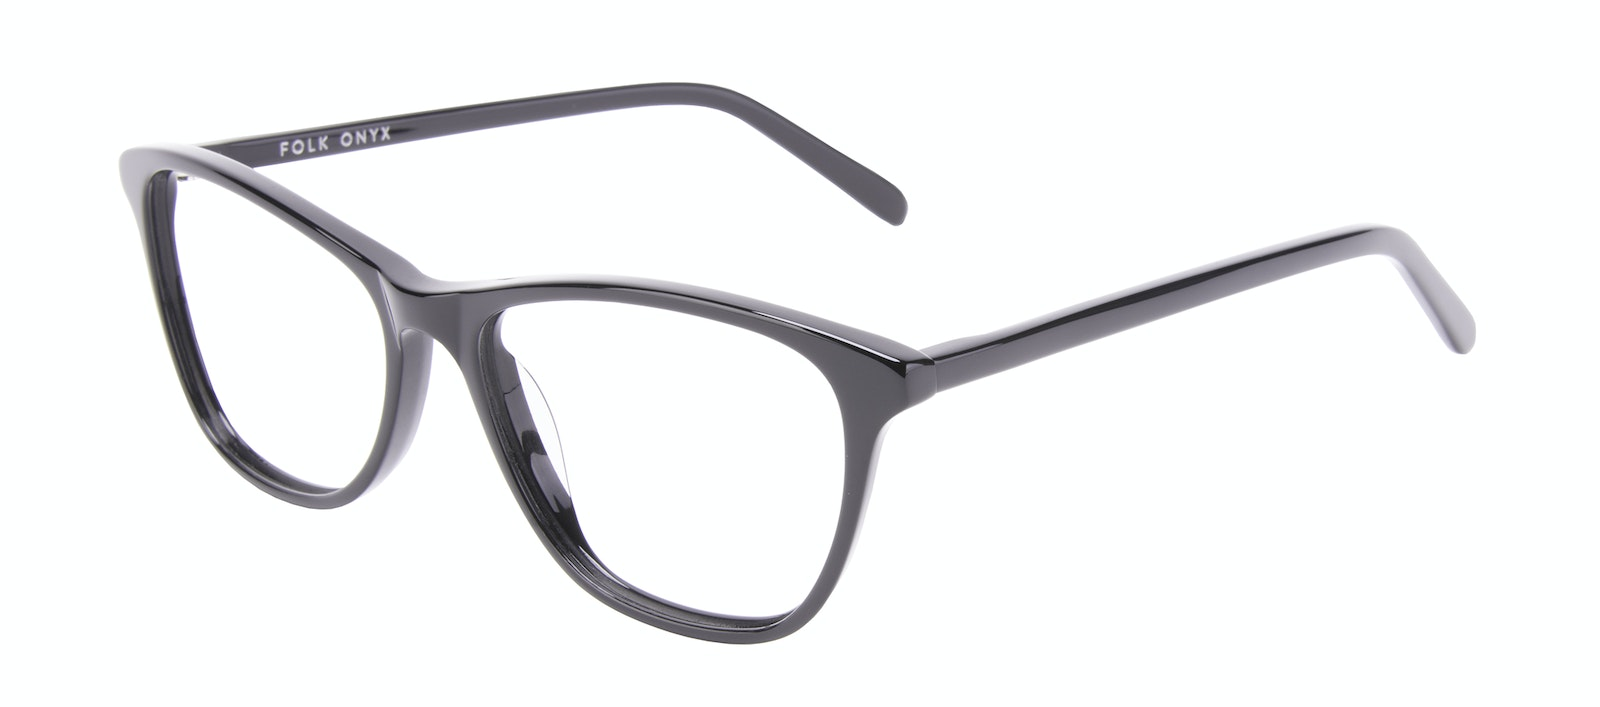 Affordable Fashion Glasses Rectangle Eyeglasses Women Folk Onyx Tilt